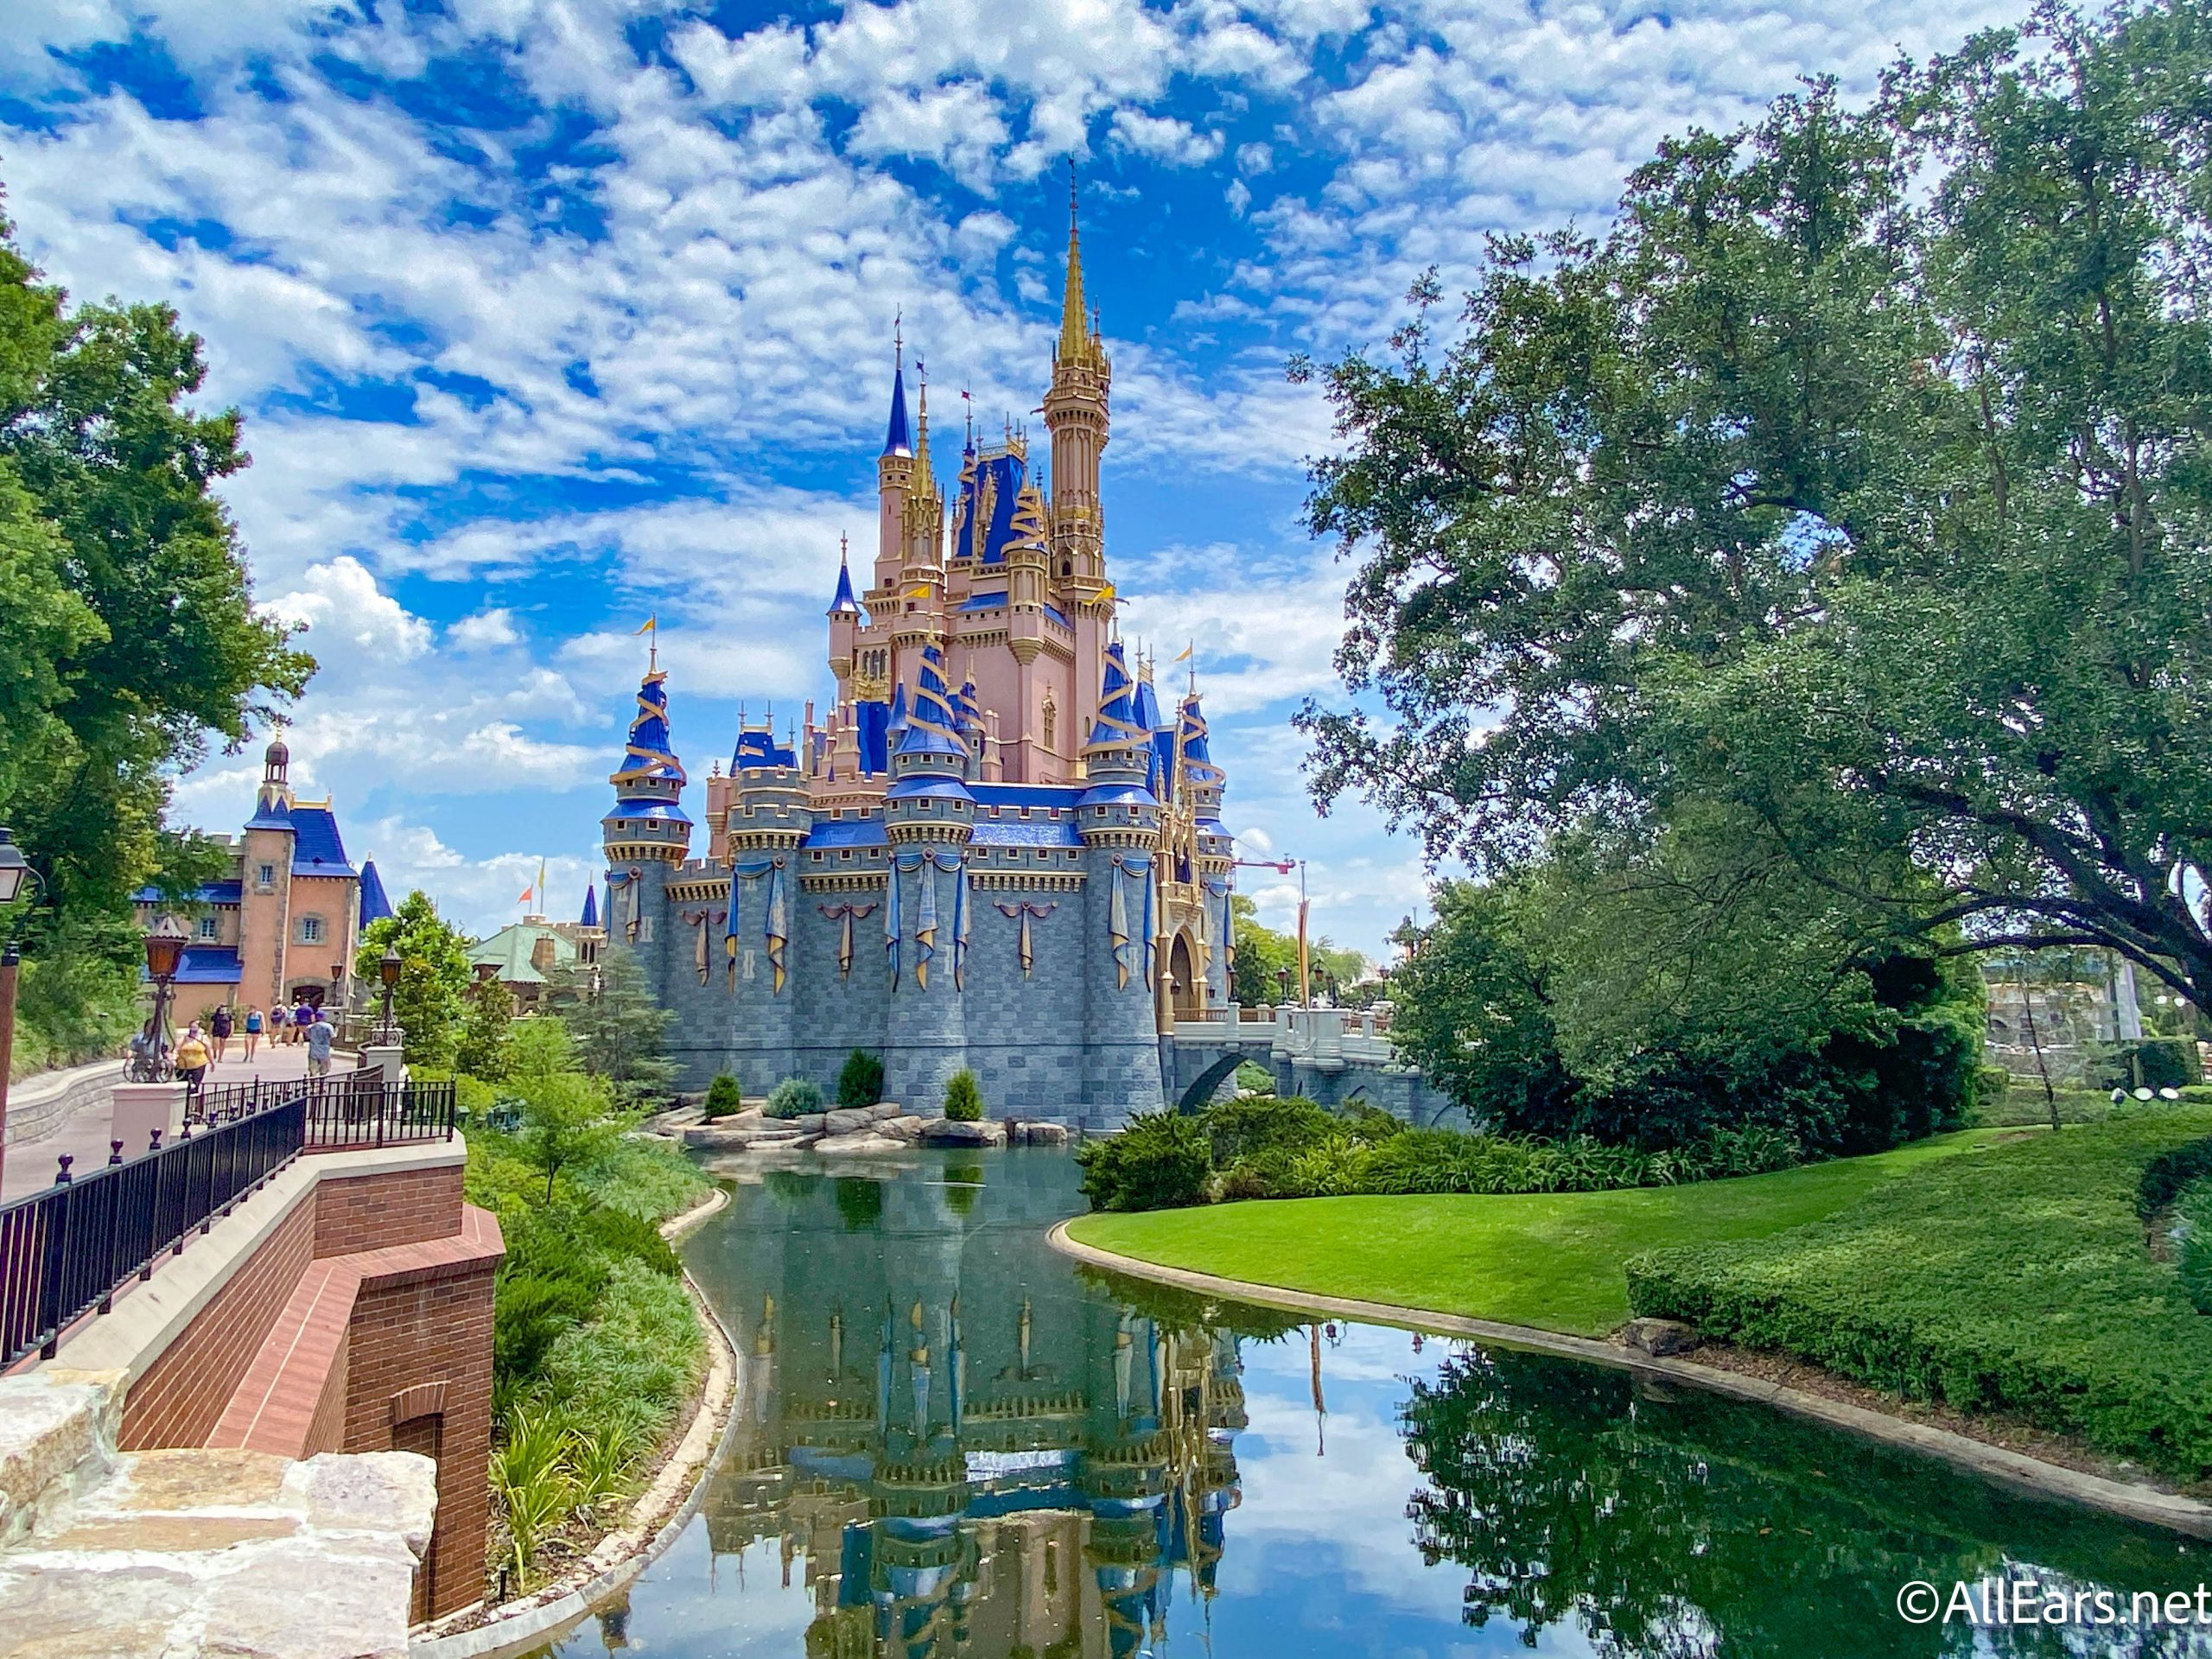 10 Things You'll Be Shocked to Learn You Can Do at Walt Disney World